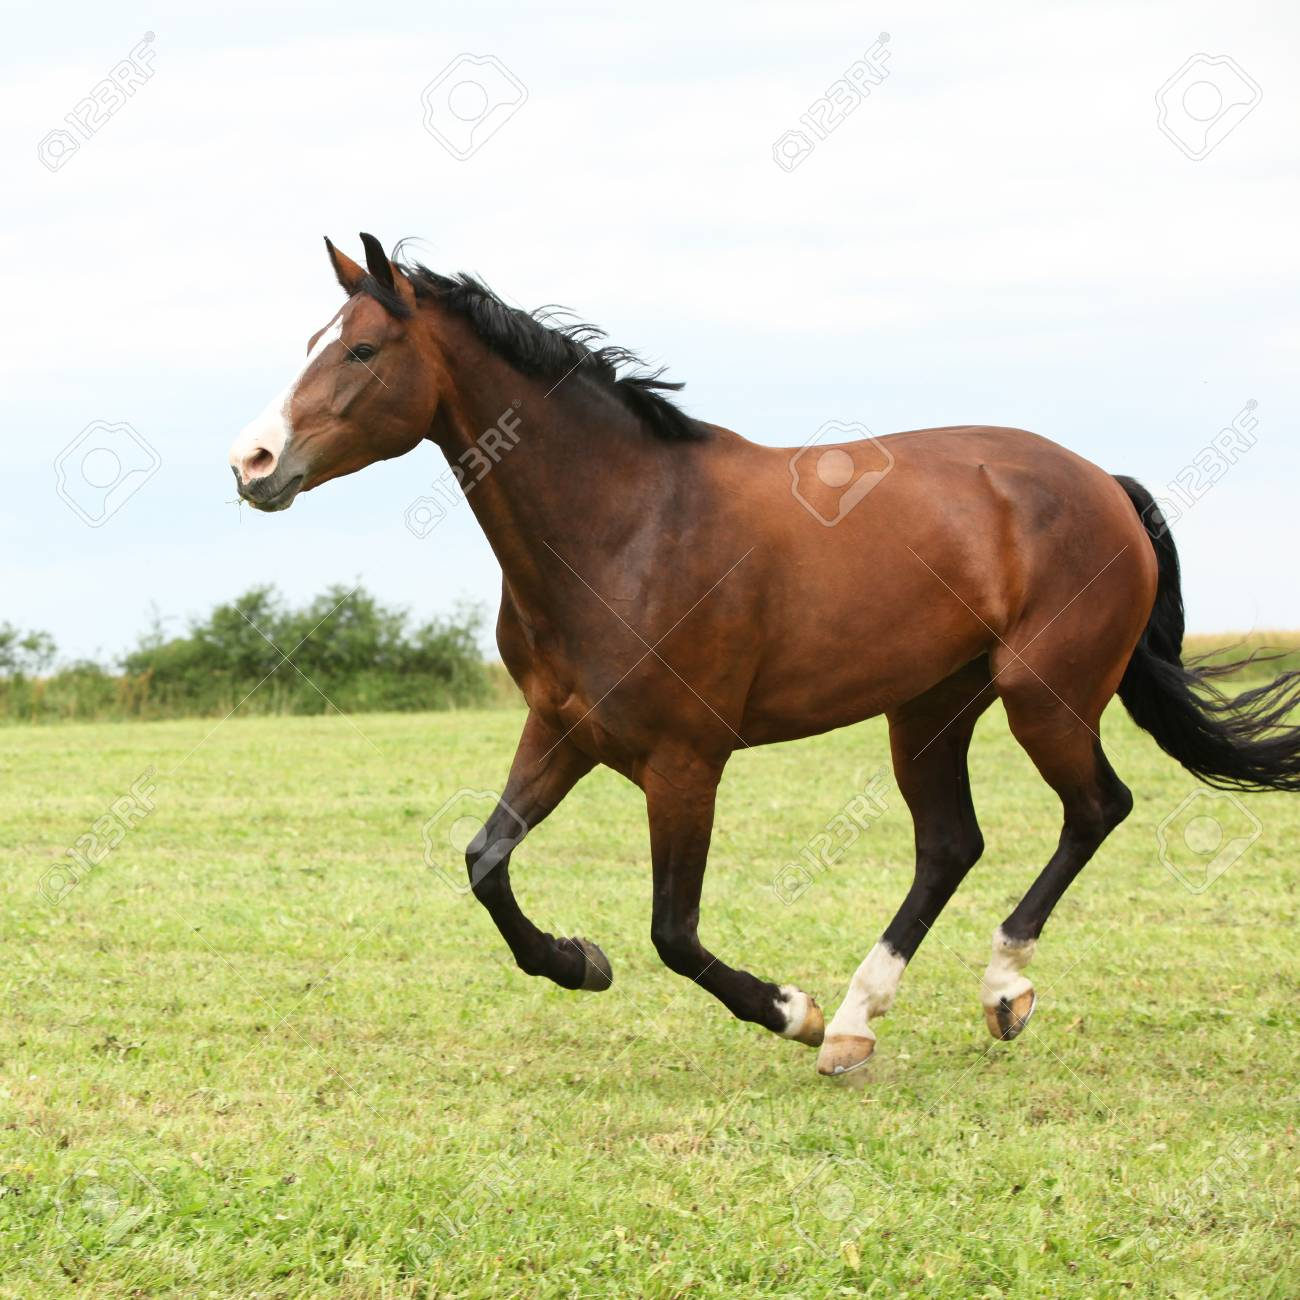 Beautiful Brown Horse Running In Freedom On The Grass Stock Photo Picture And Royalty Free Image Image 100732764